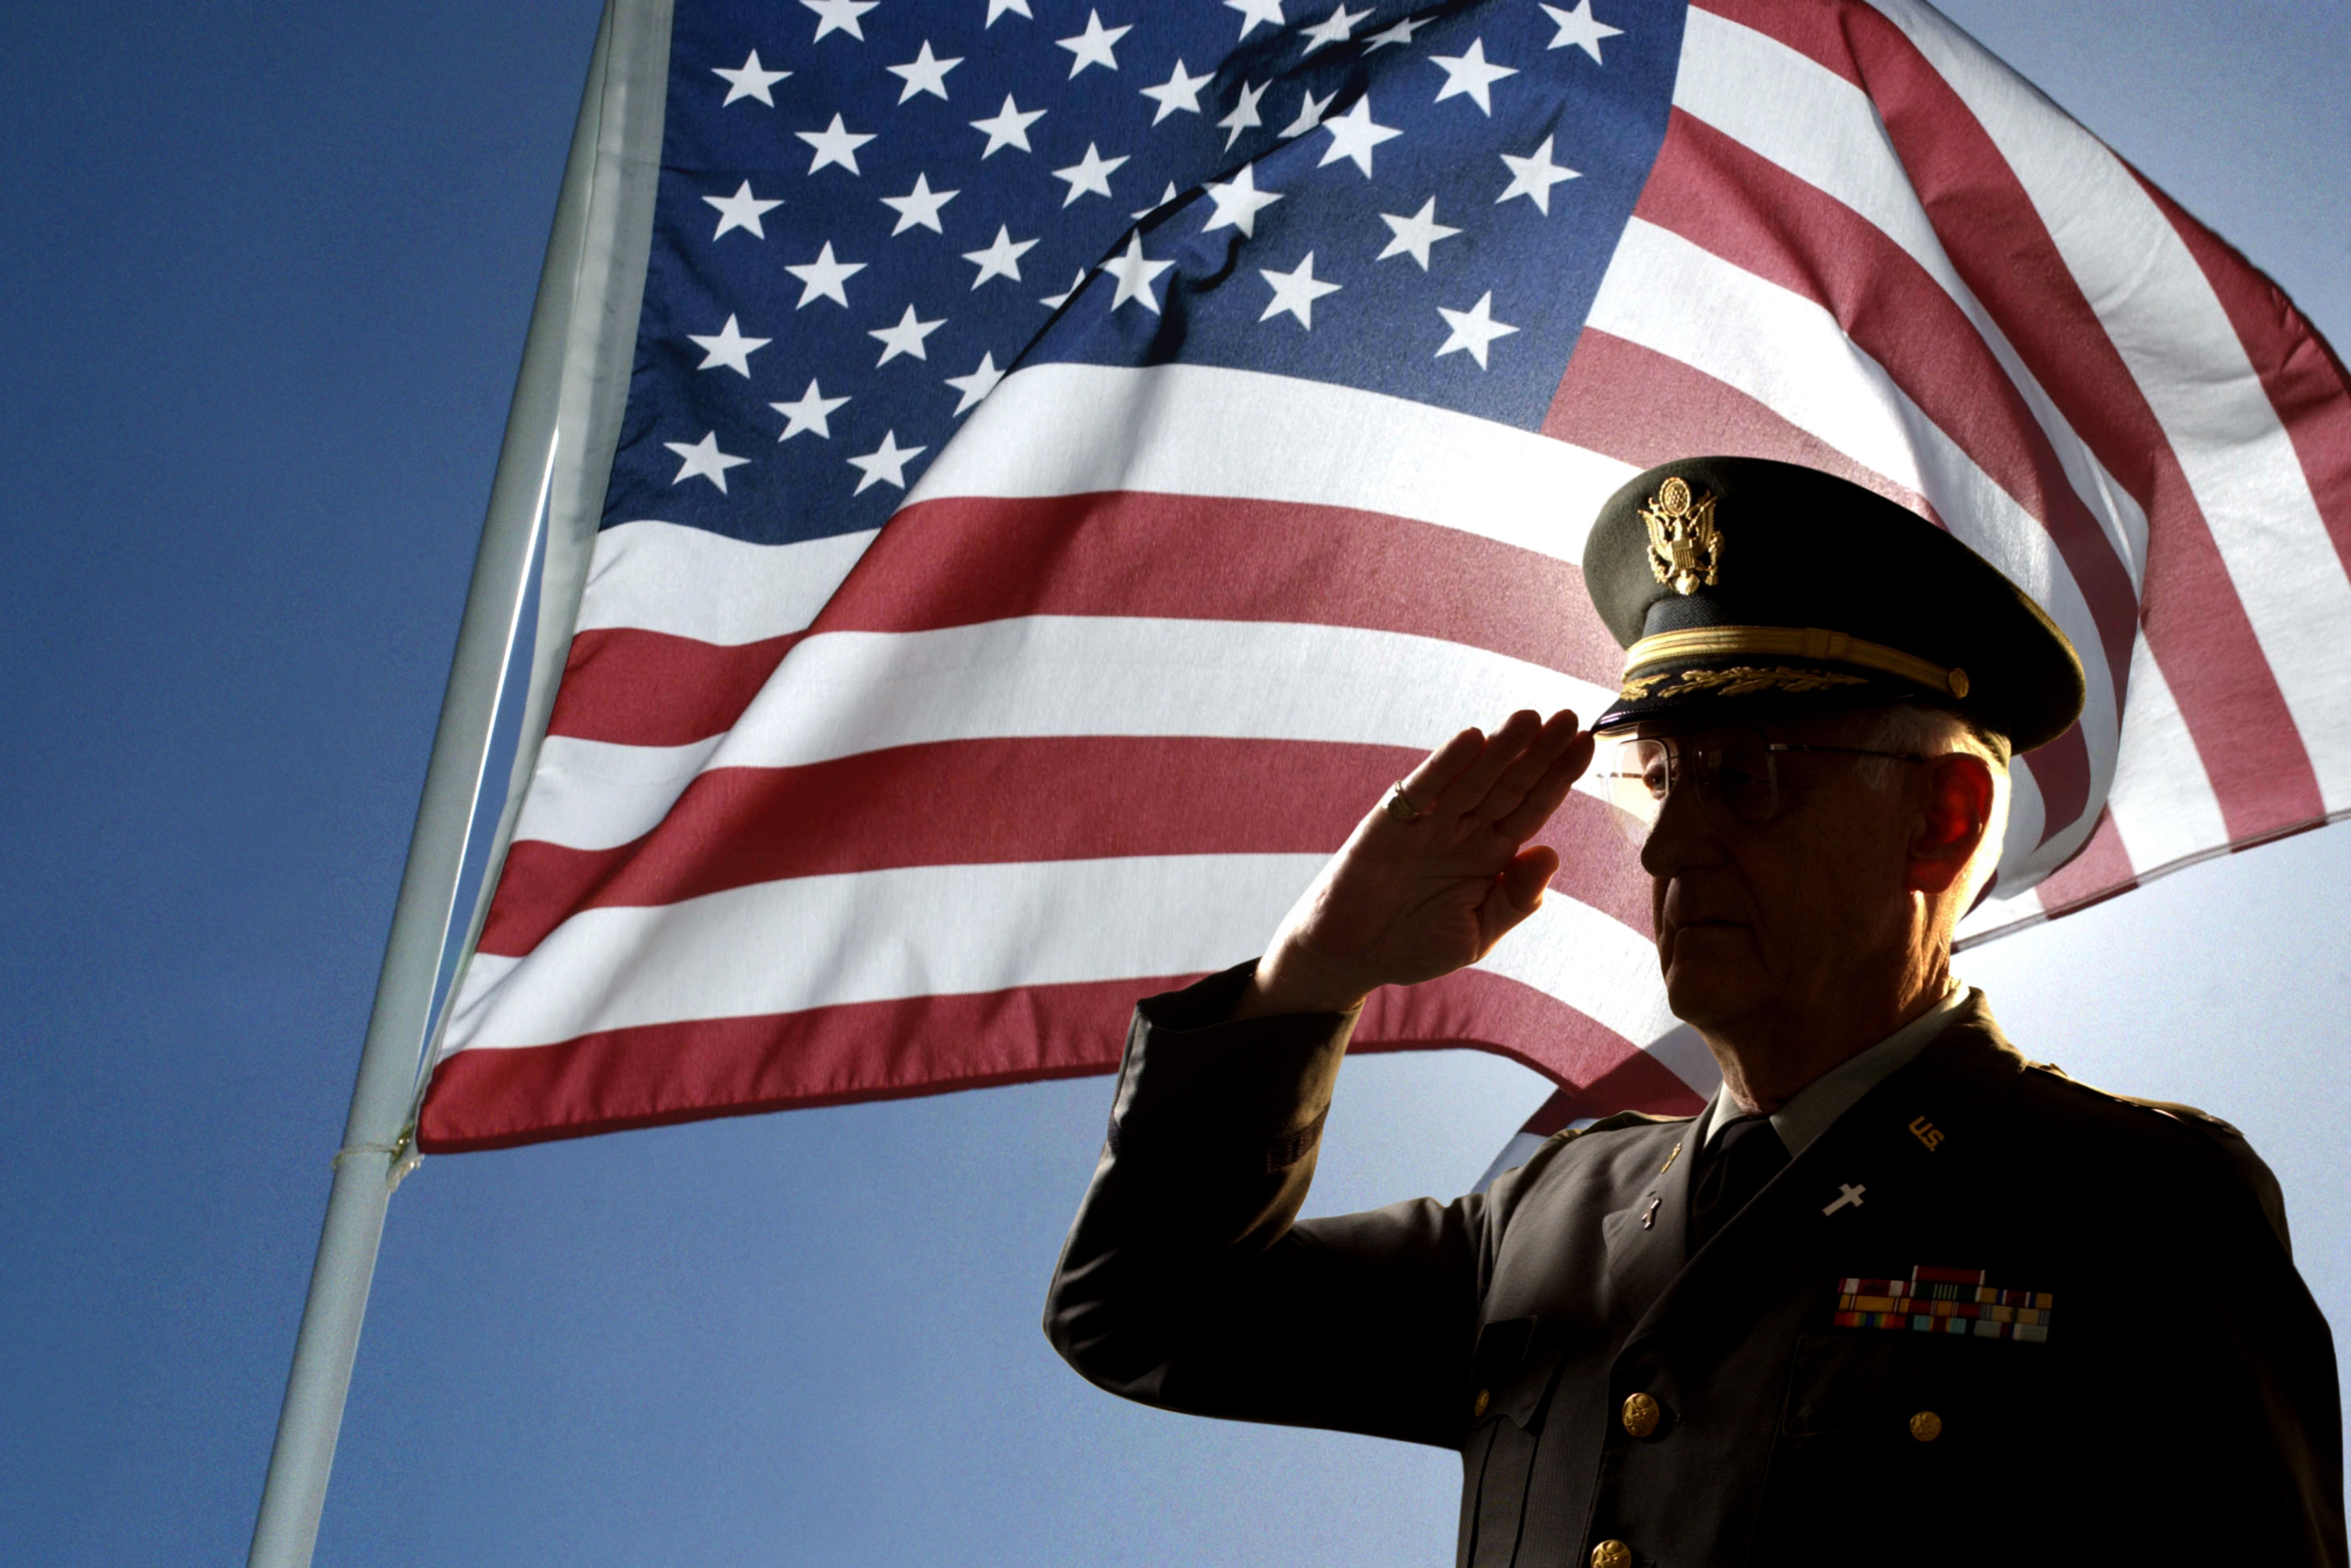 Why is veterans day important - Free Stuff For Military Members And Veterans On Memorial Day